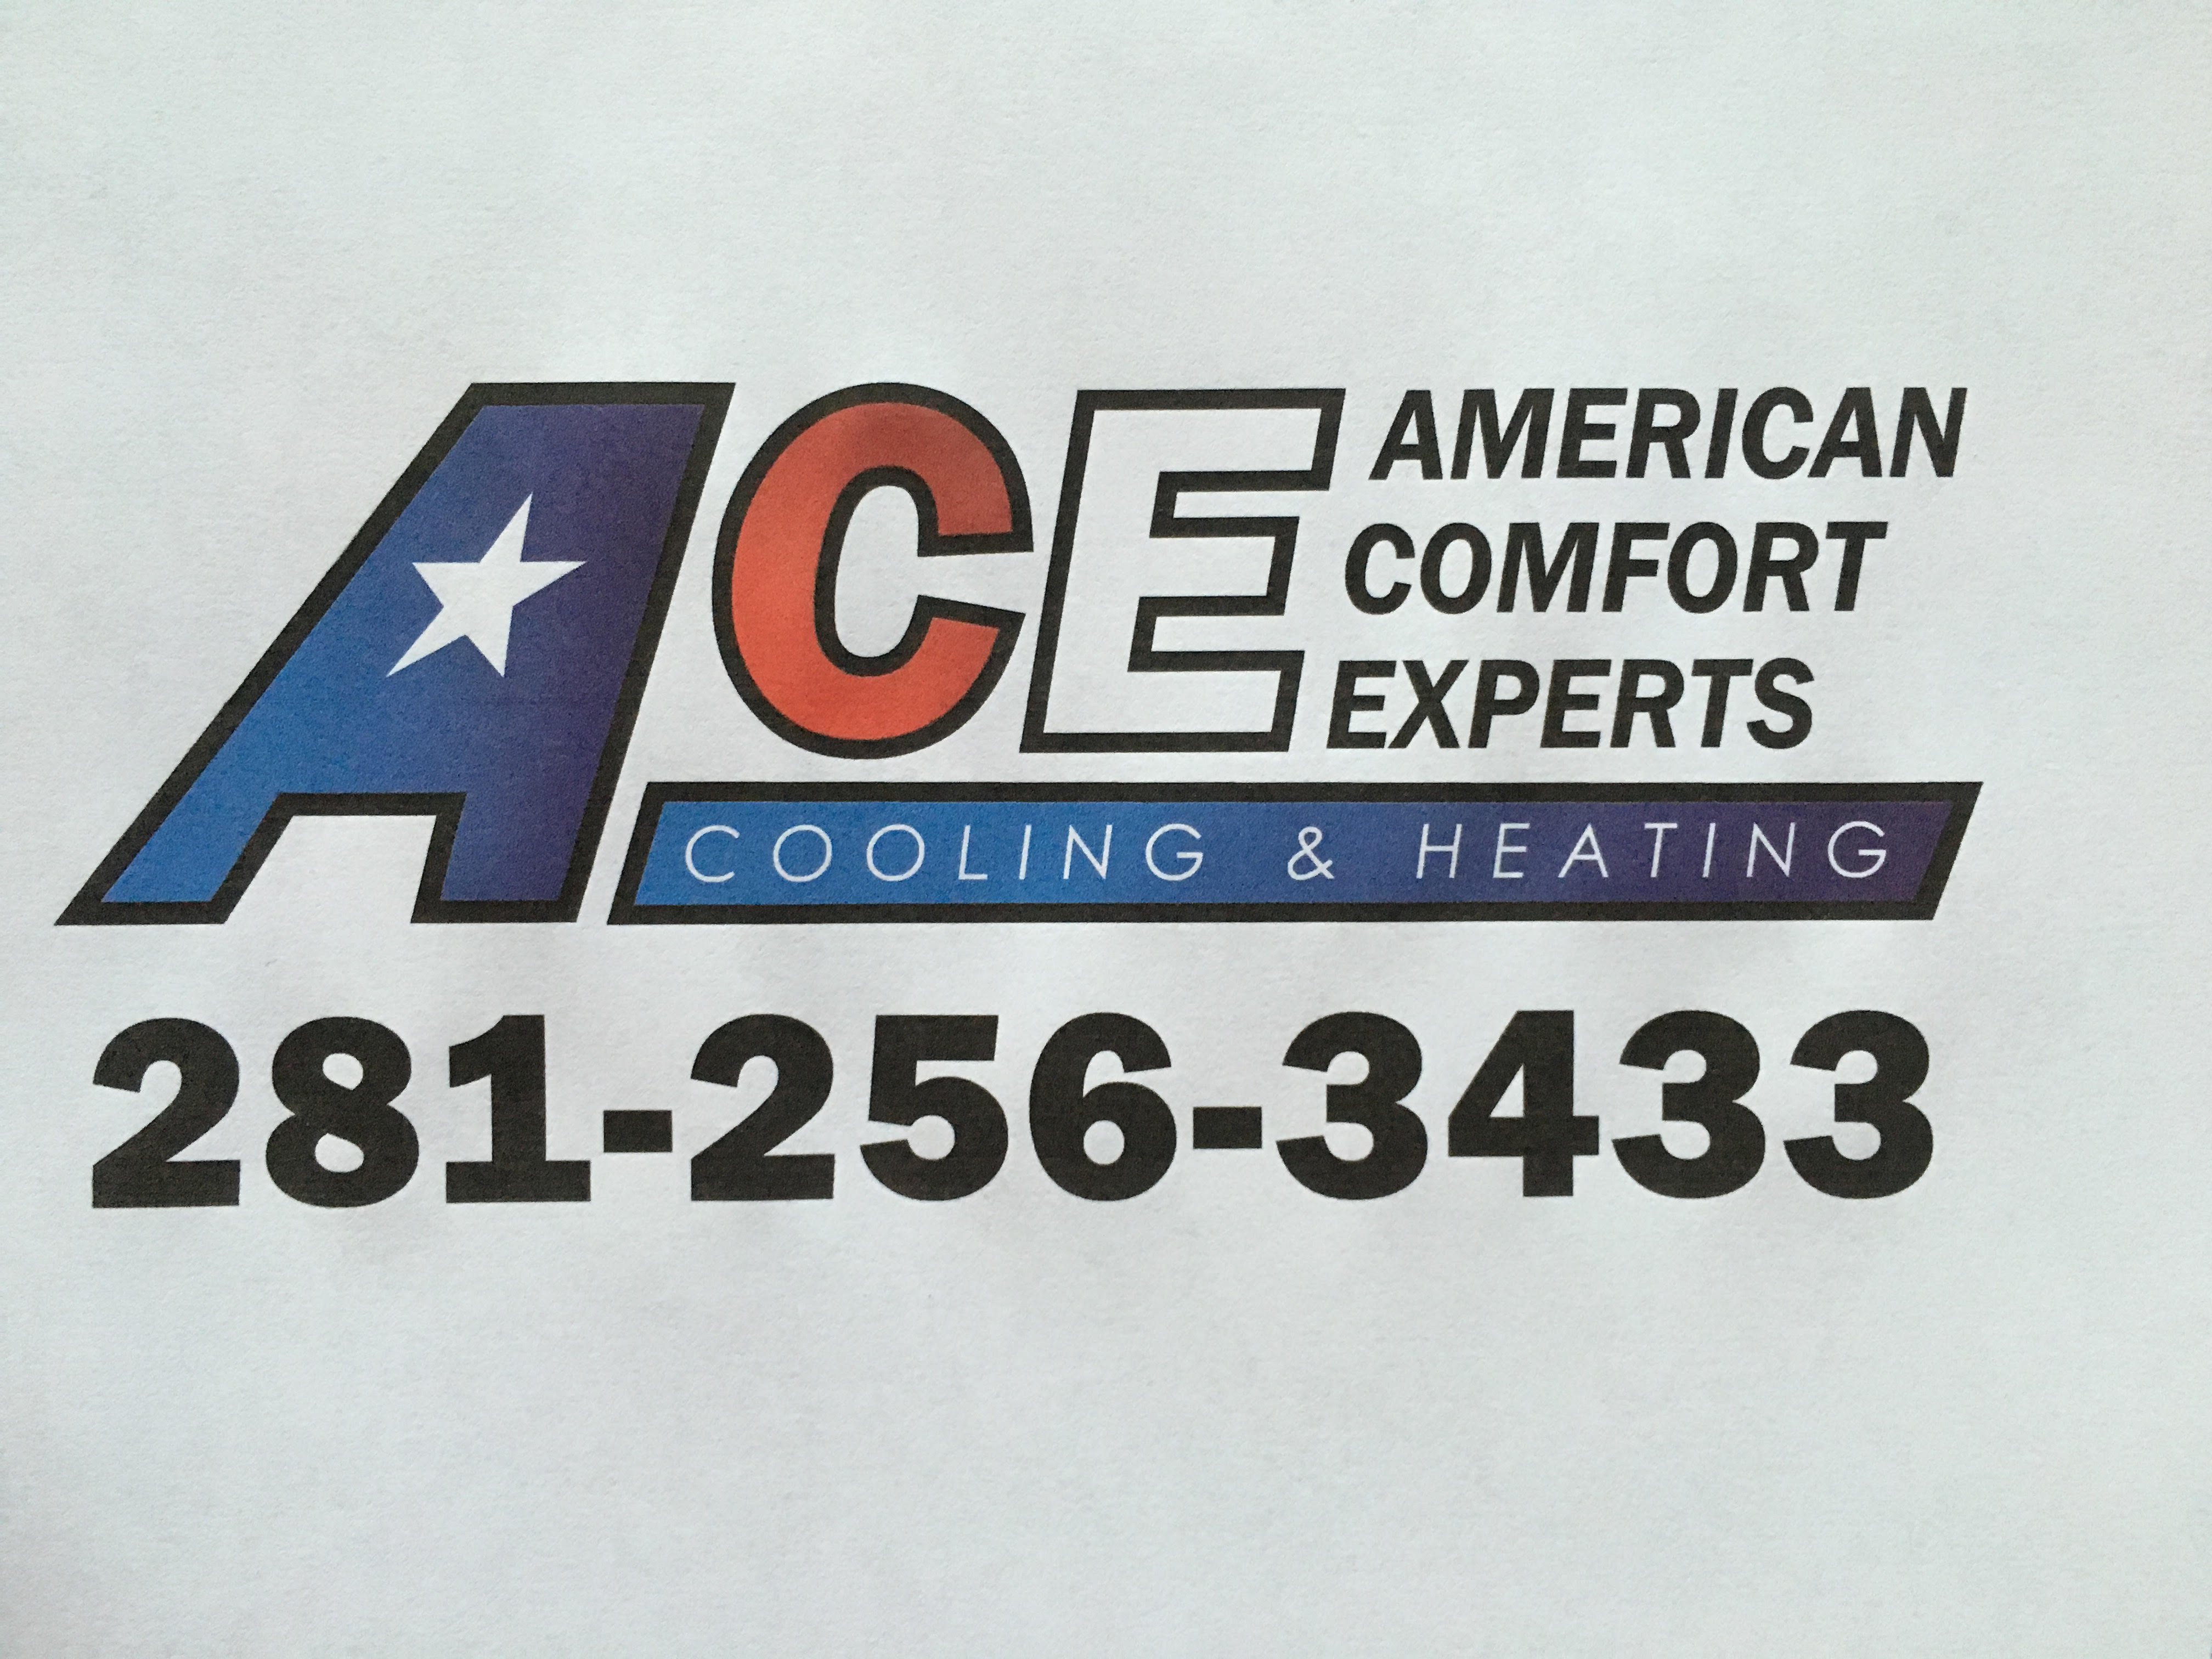 American Comfort Experts Offer 24/7 Emergency Heater Repair